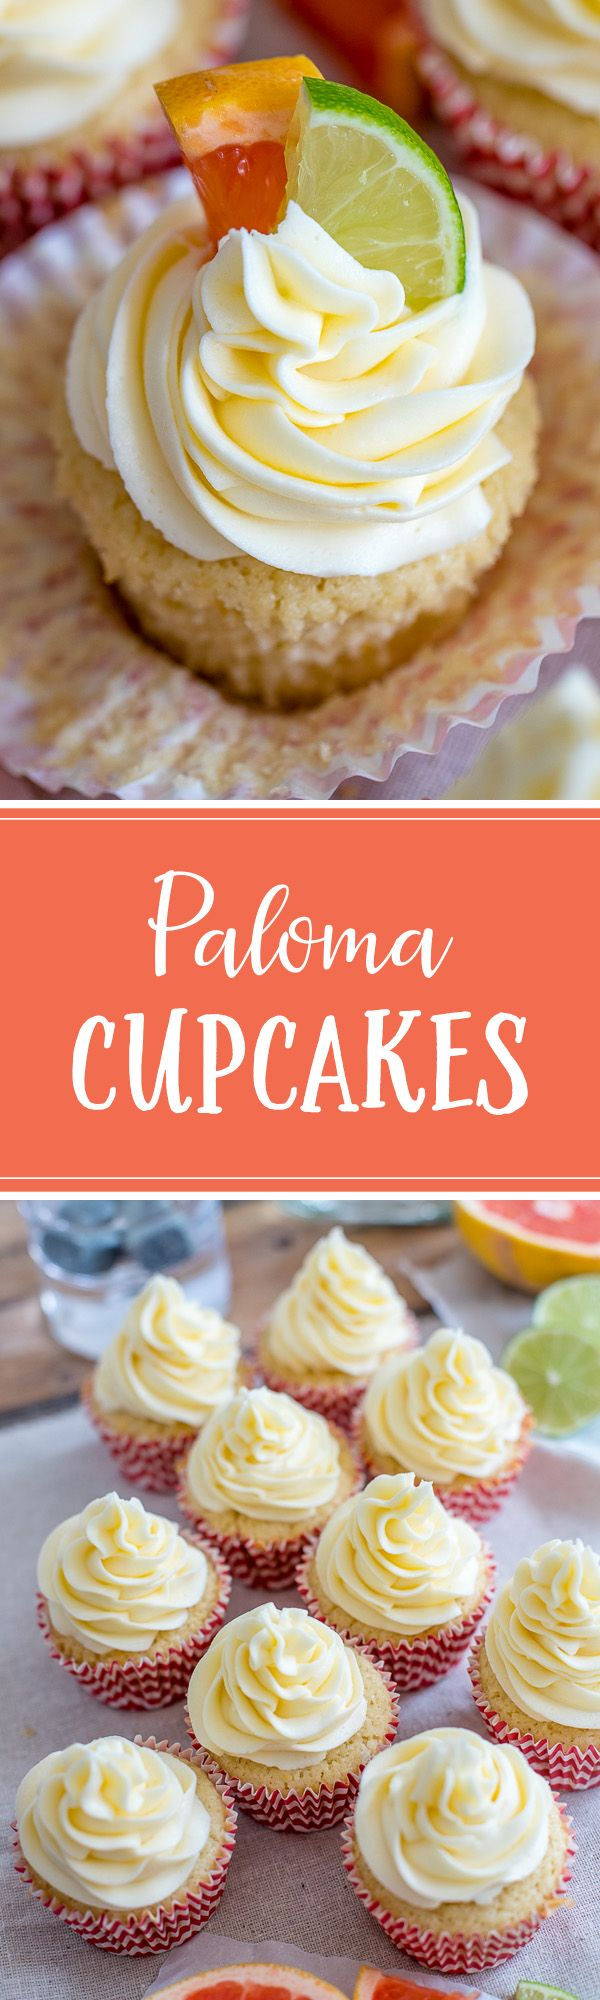 A citrus-filled, boozy cupcake made with tequila, lime, and grapefruit, inspired by a crisp Mexican Paloma cocktail. A show-stopping dessert for Cinco de Mayo or any summer party! #paloma #cincodemayo #boozycupcakes via @nourishandfete